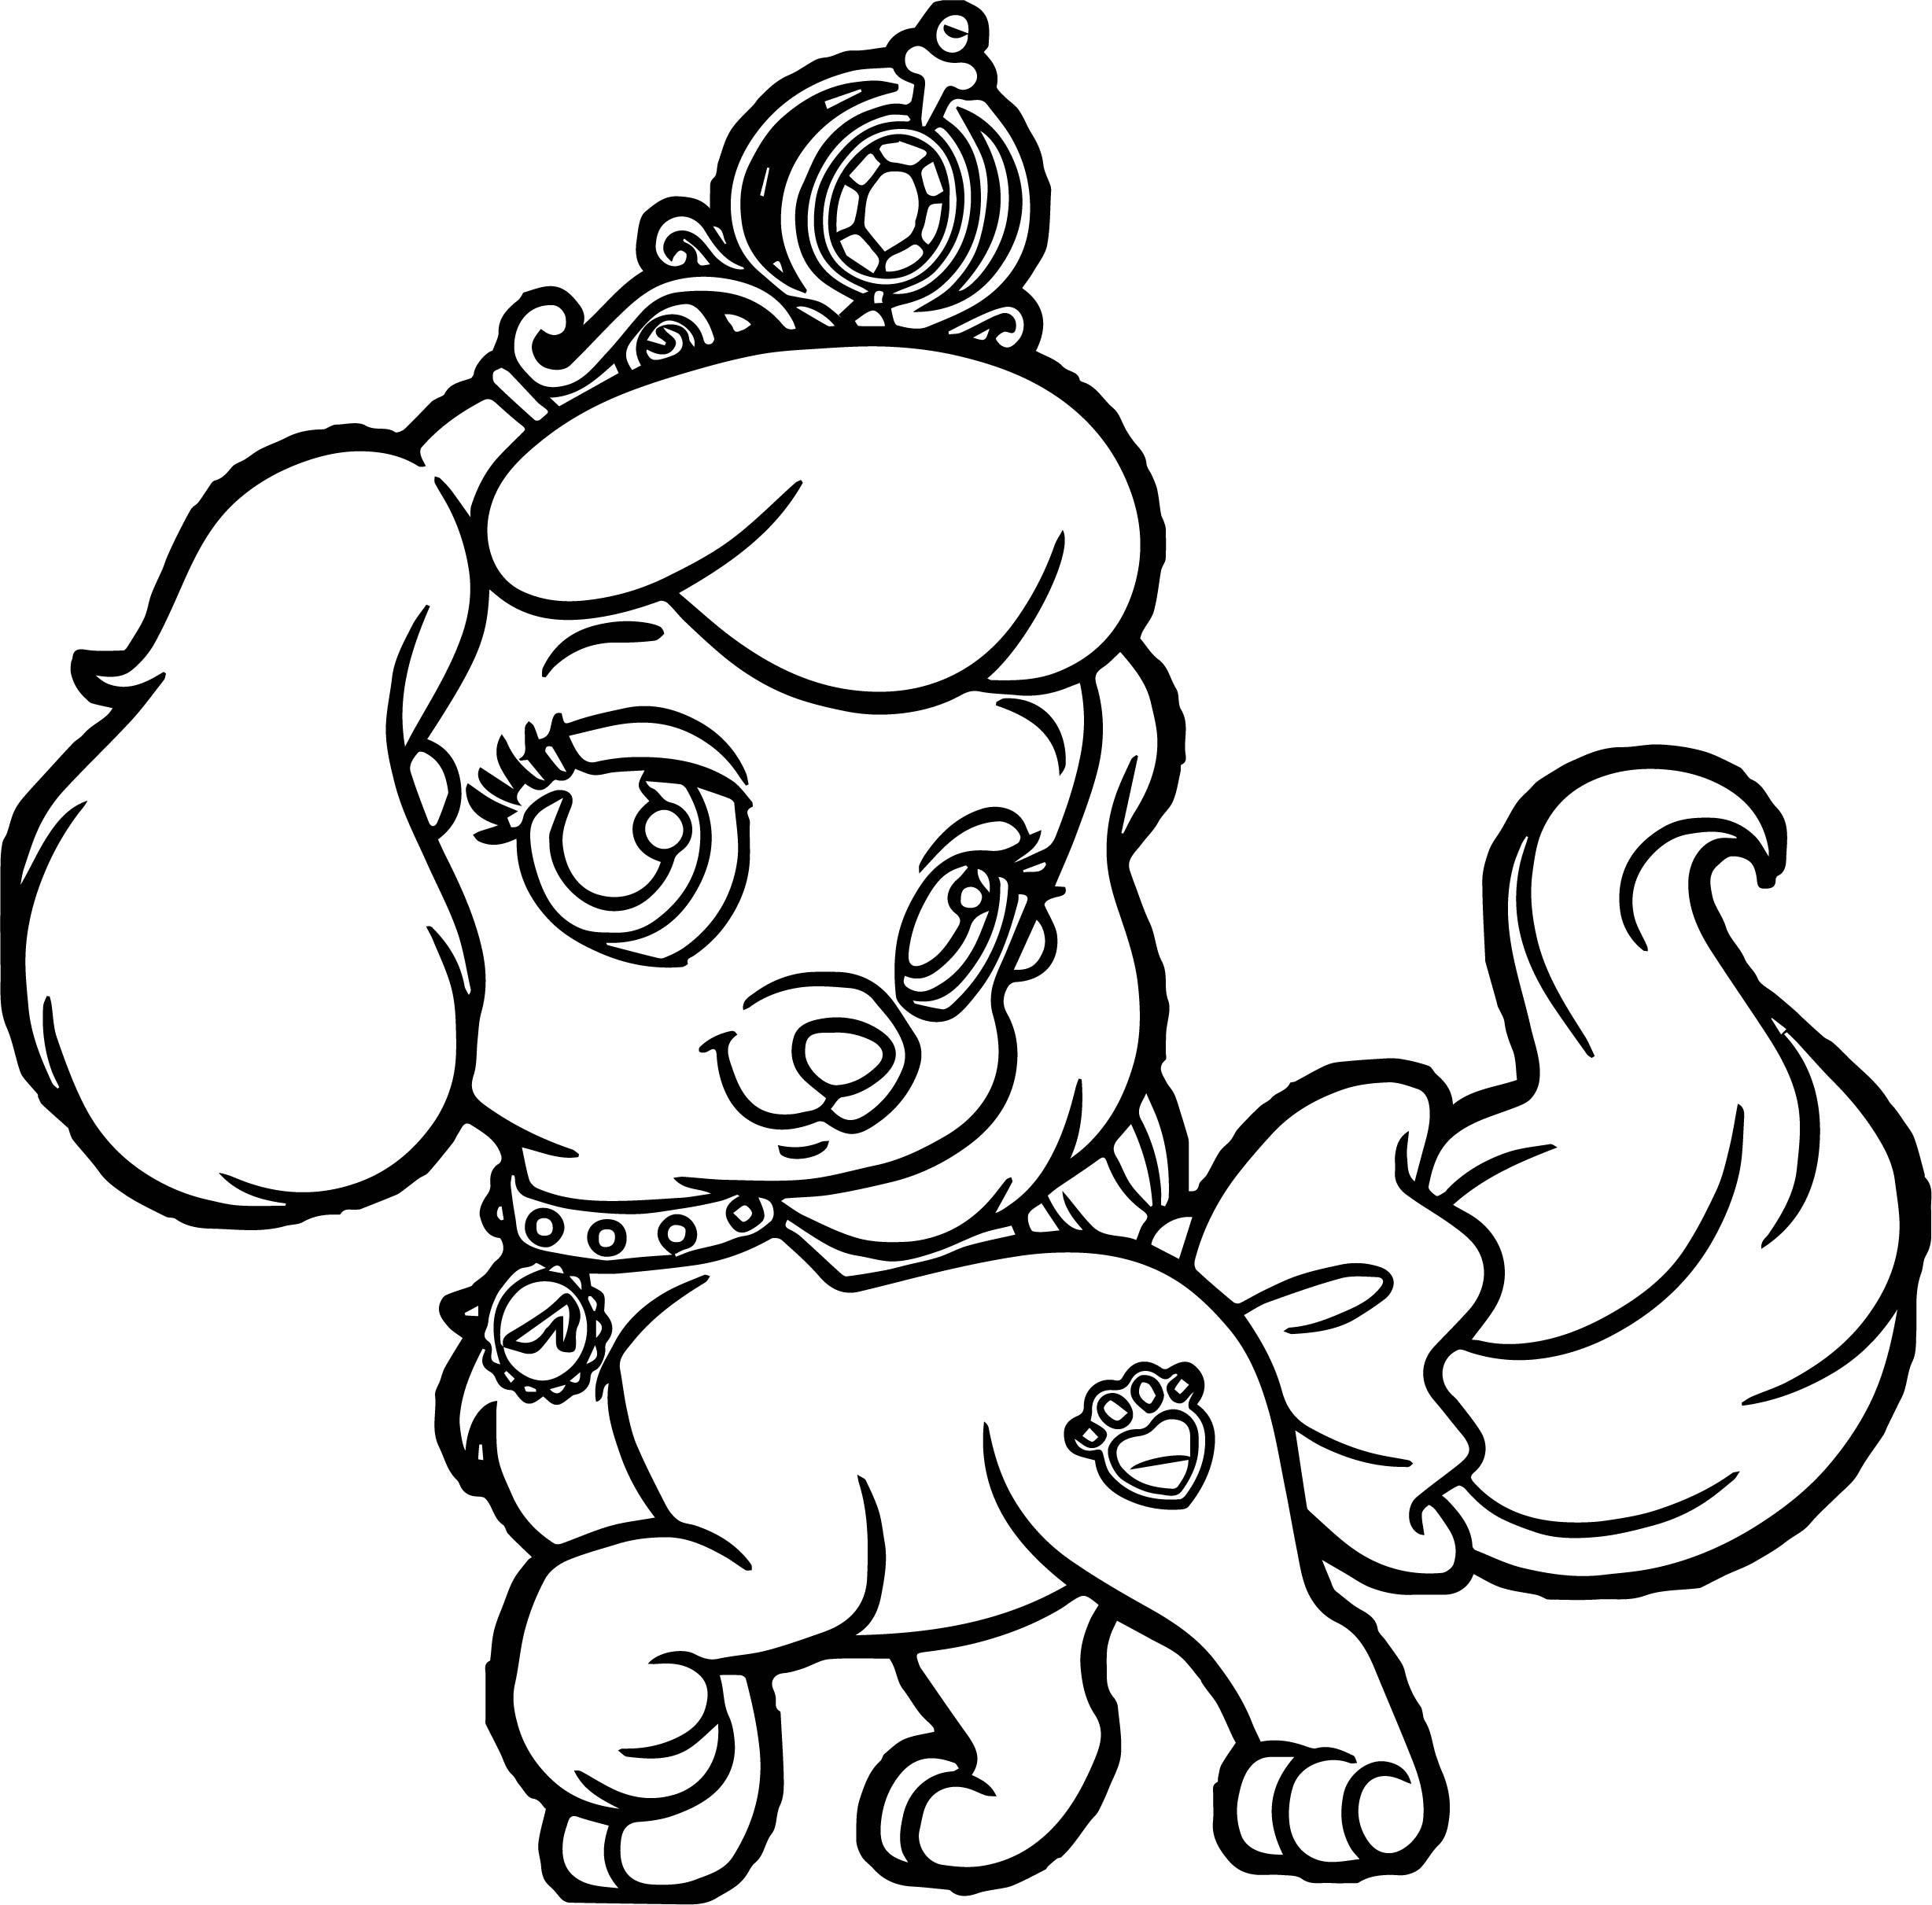 dog coloring pictures printable free printable dog coloring pages for kids coloring printable pictures dog